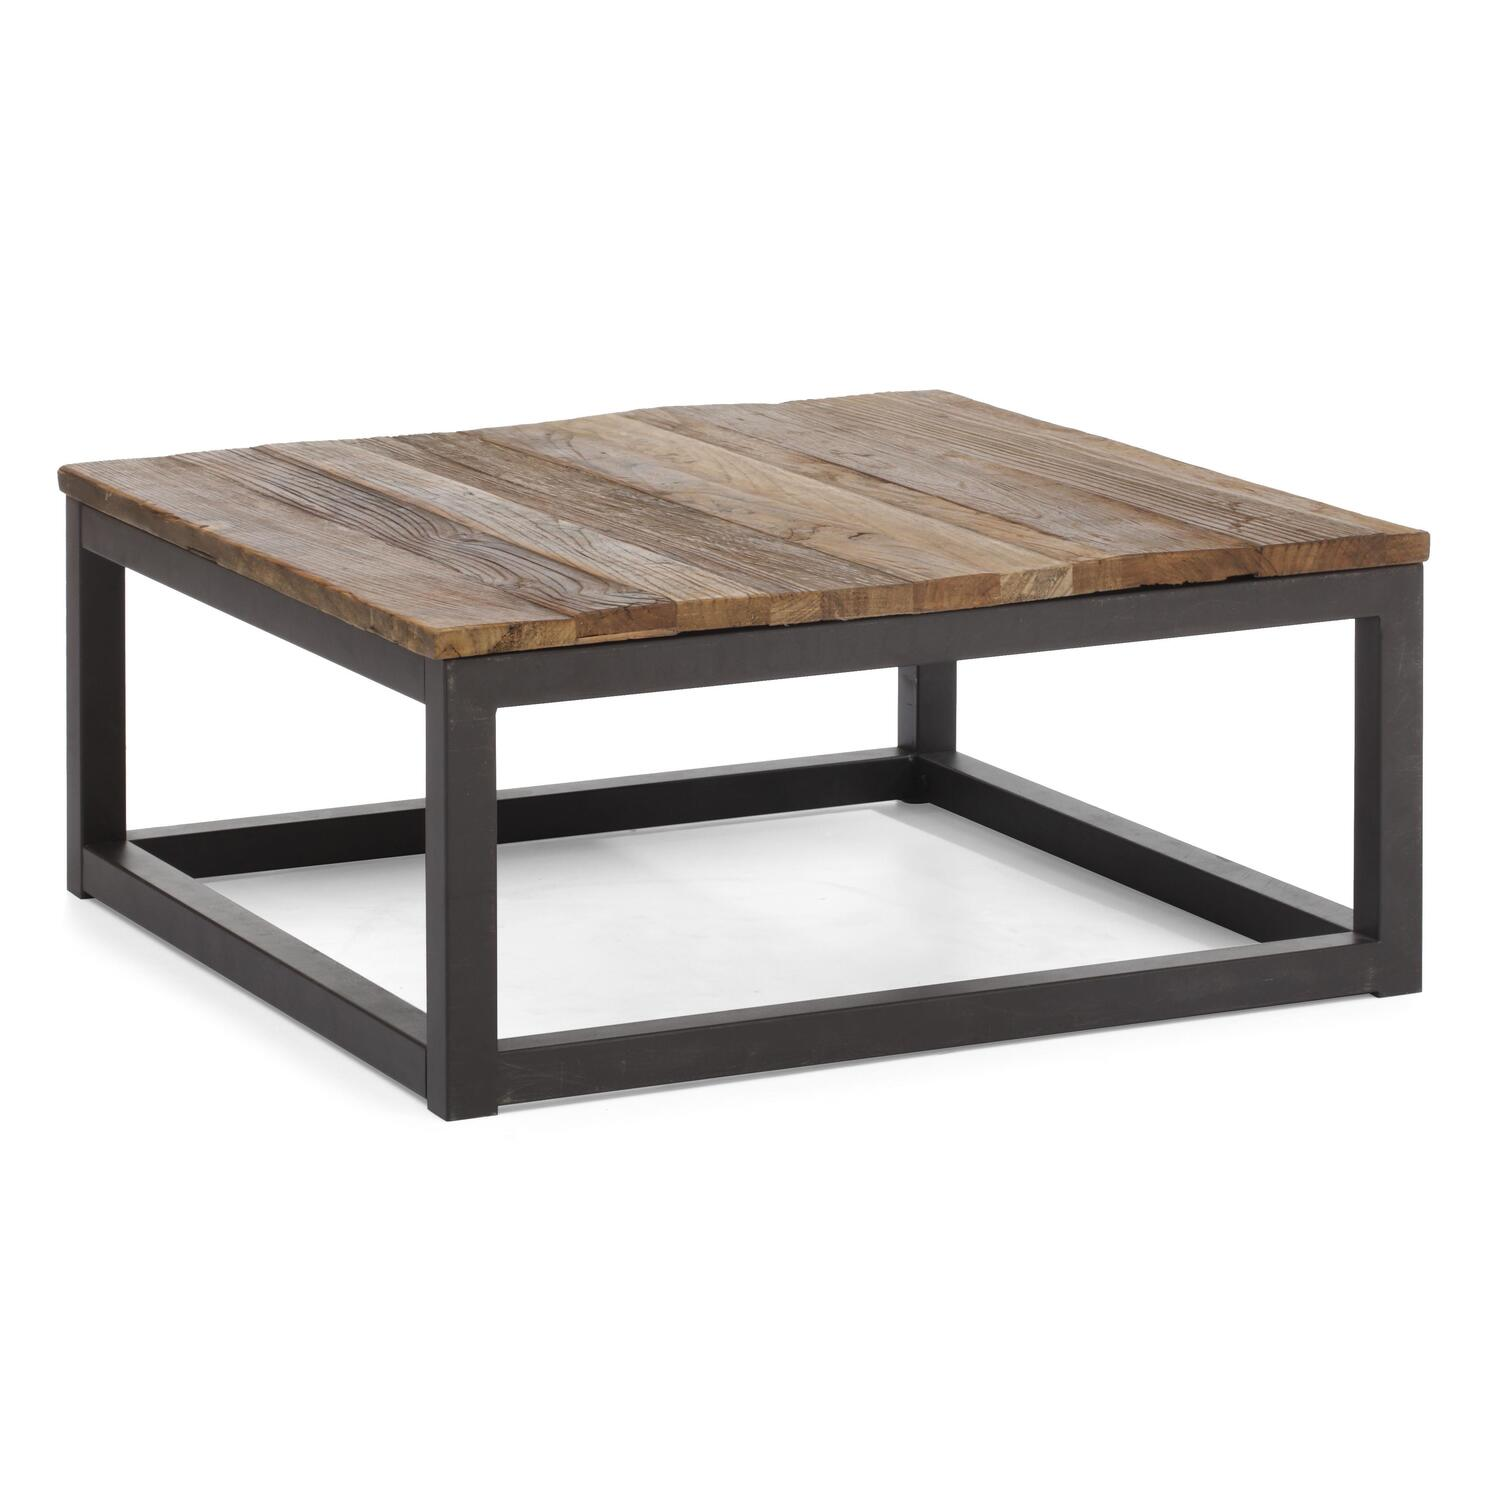 Zuo Modern Civic Center Square Coffee Table By Oj Commerce 98122